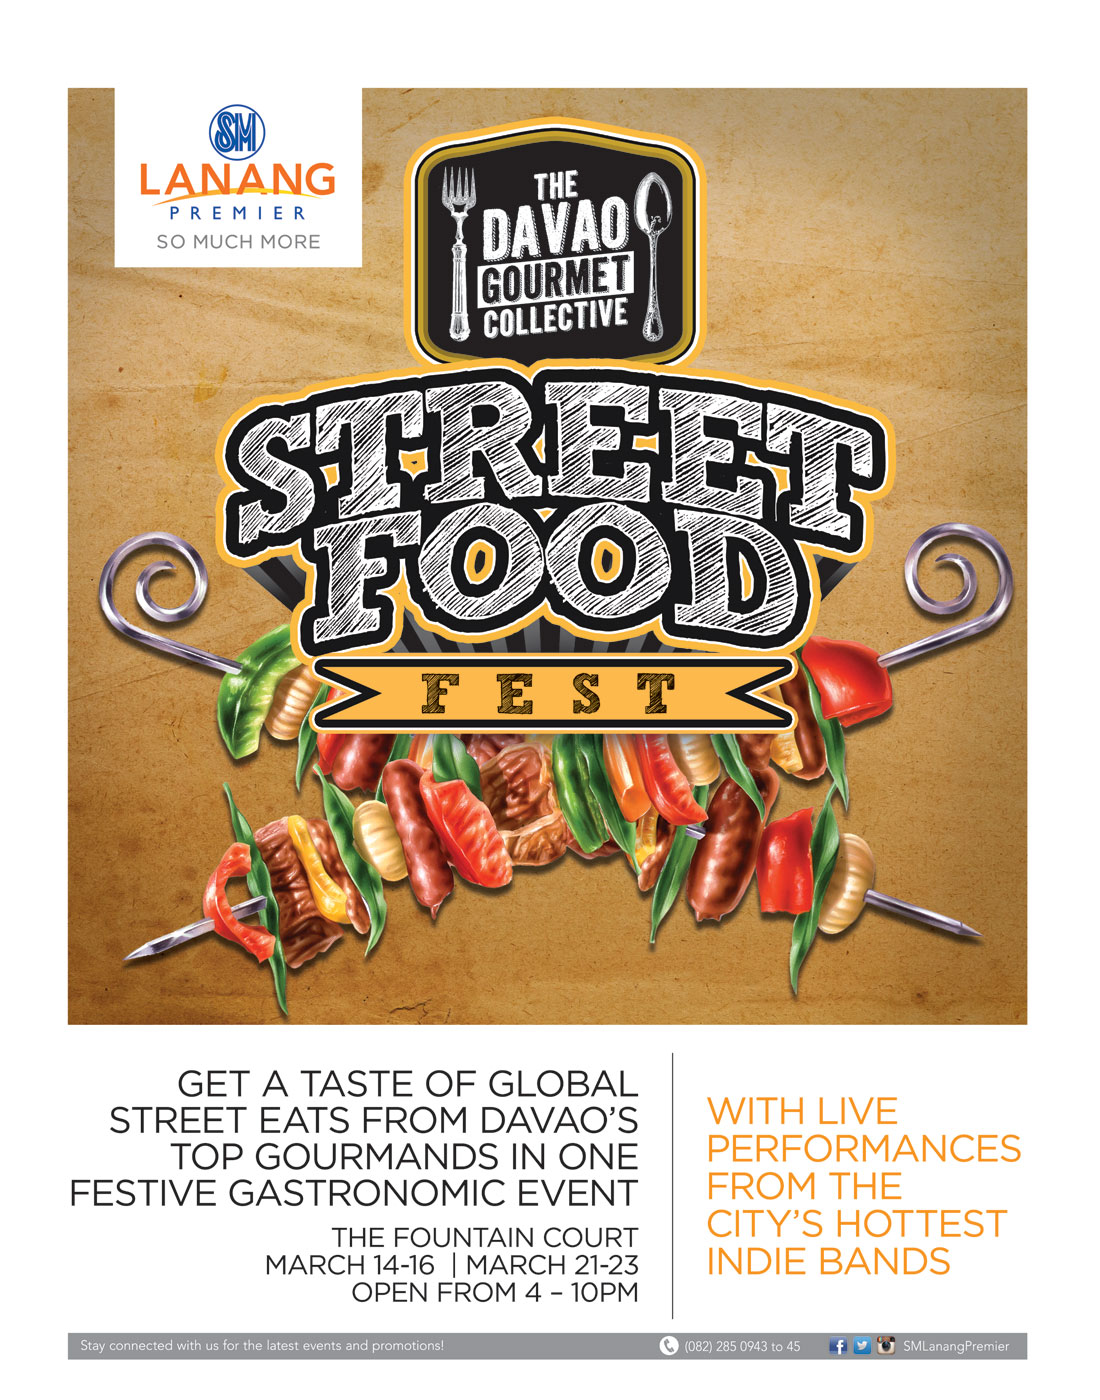 Street Food Fest March 2014 Davao Gourmet Collective SM Lanang Premier poster